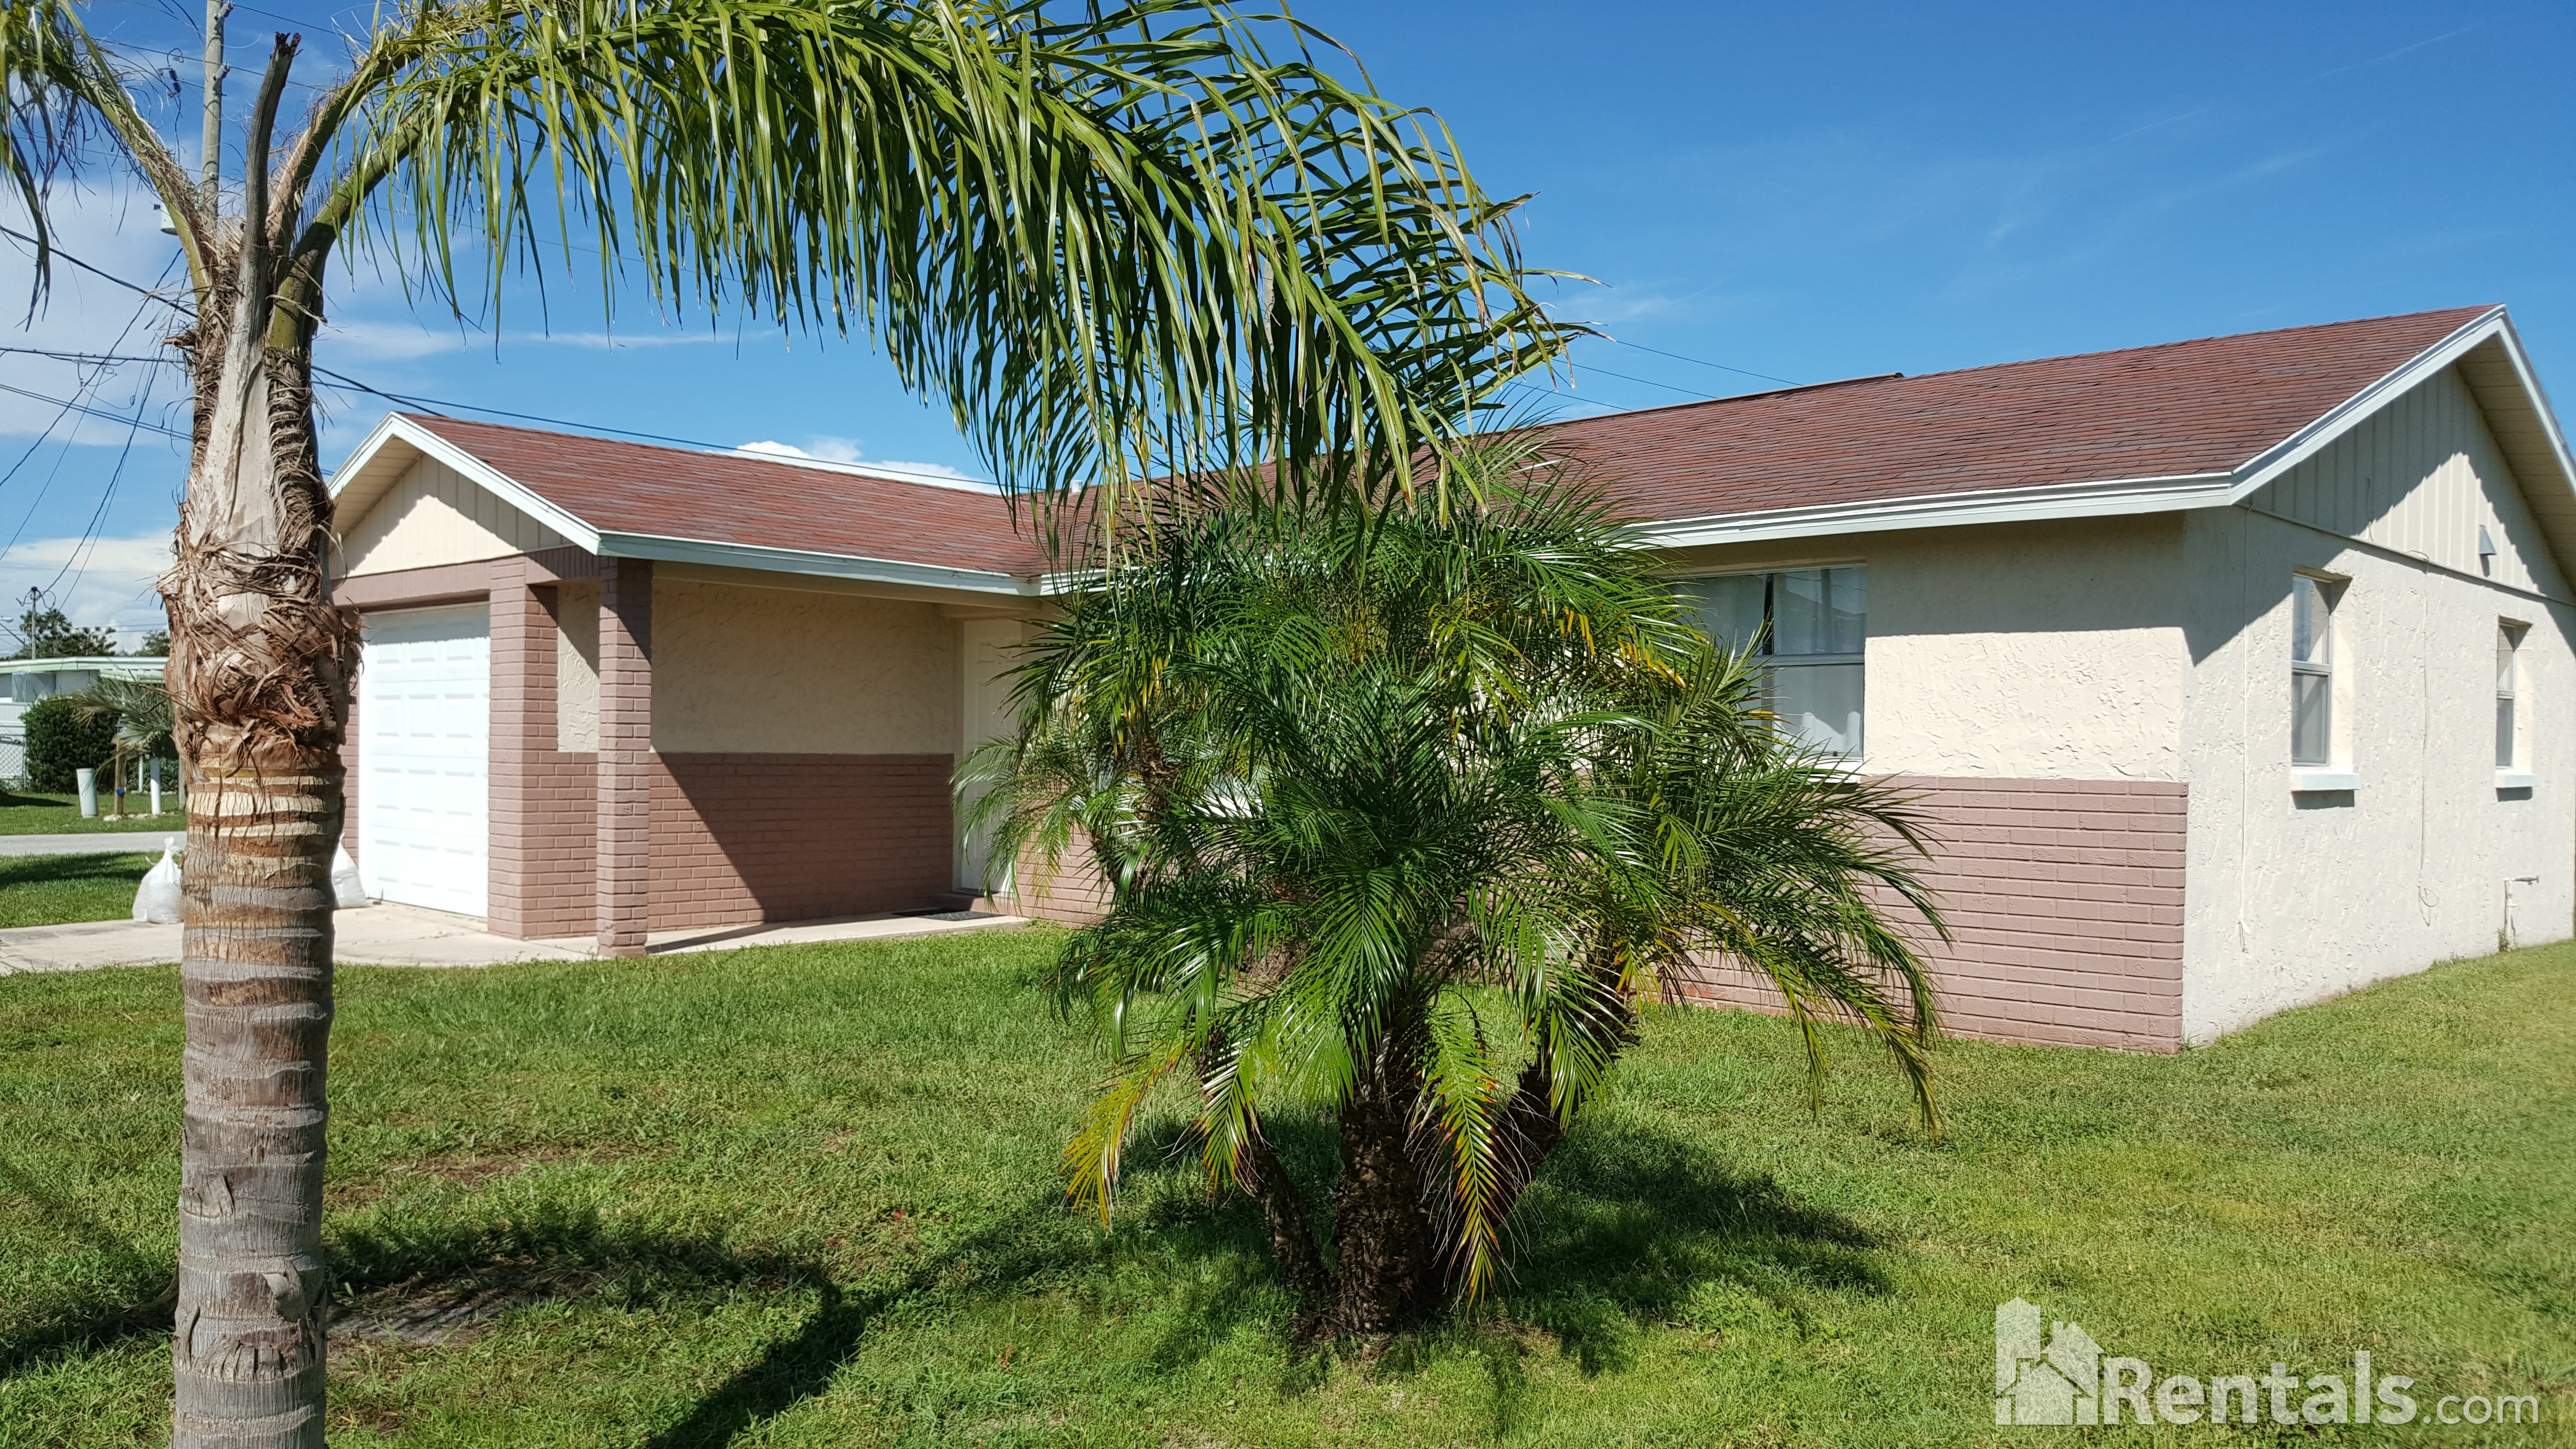 House for Rent in Hudson Beach Estates